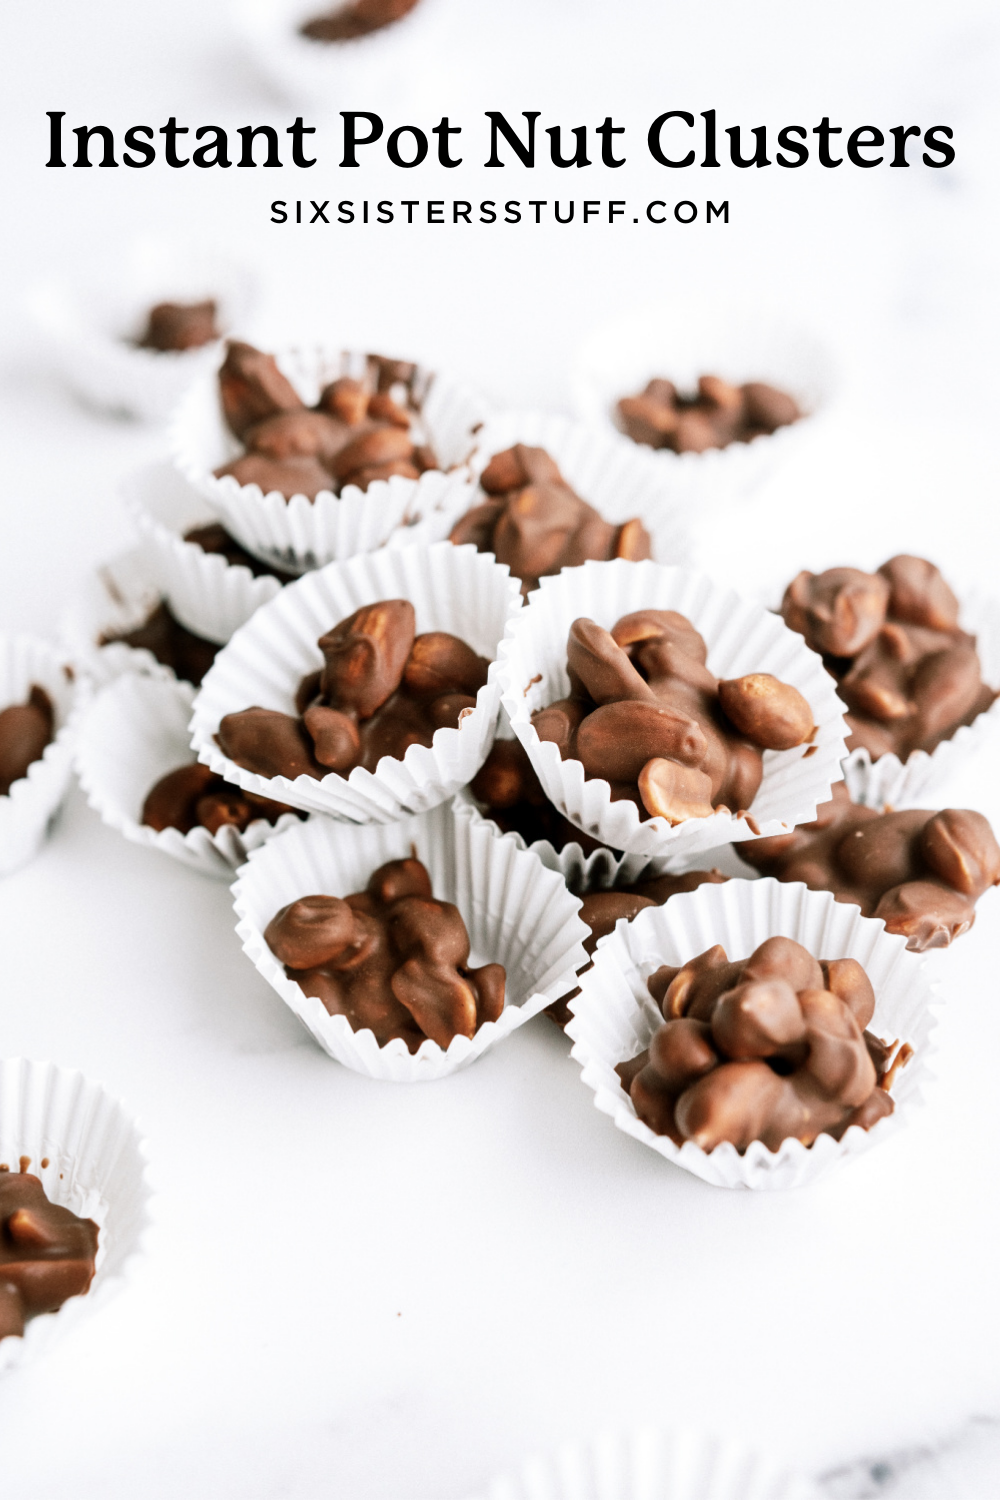 Instant pot chocolate clusters on a large white surface